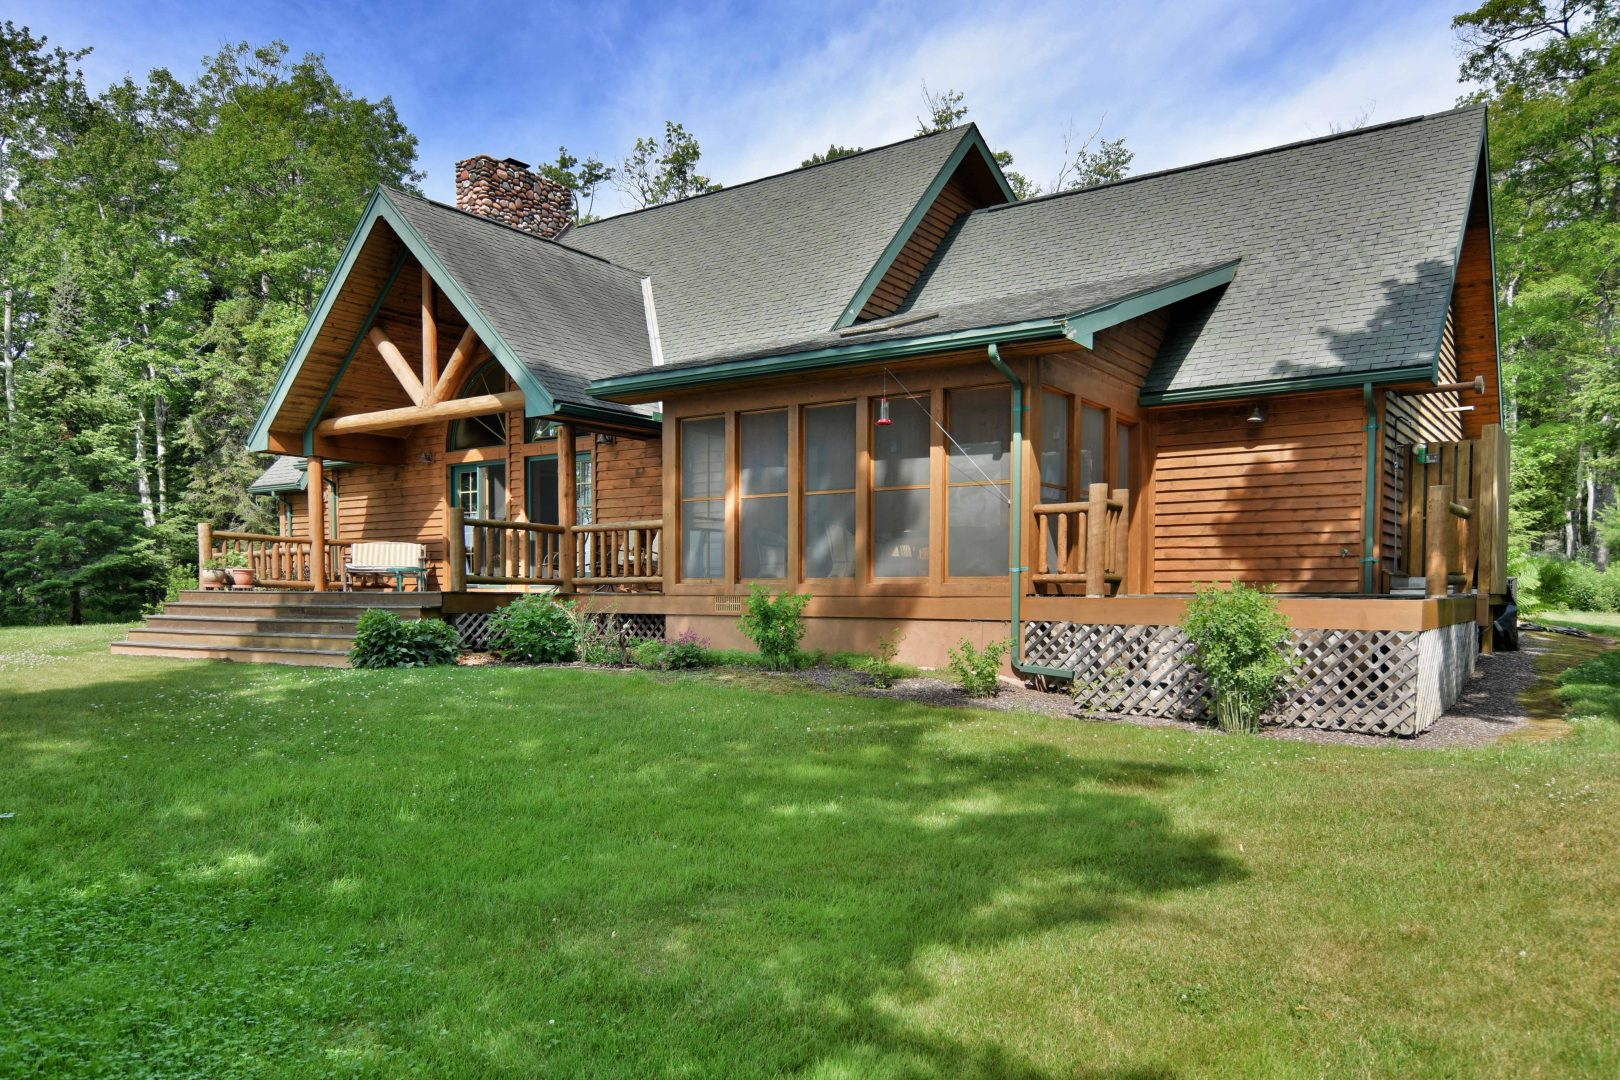 La Pointe Wisconsin Real Estate Virtual Tours